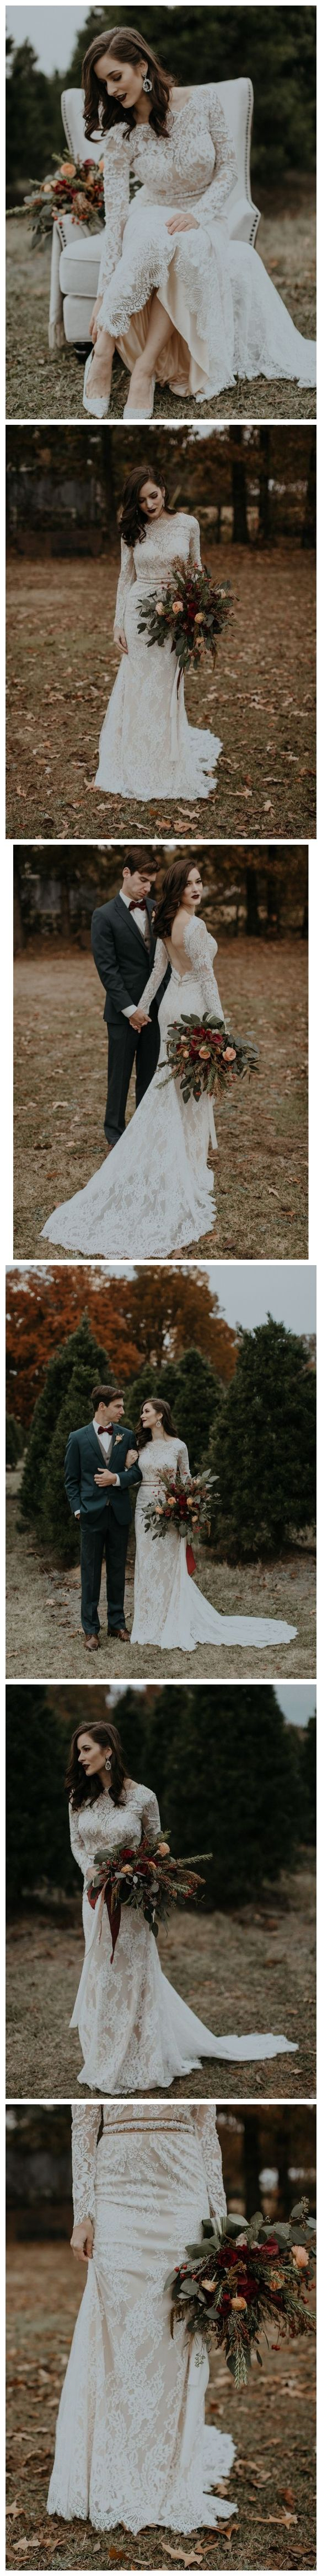 Long sleeve vintage wedding dresses backless rustic lace wedding